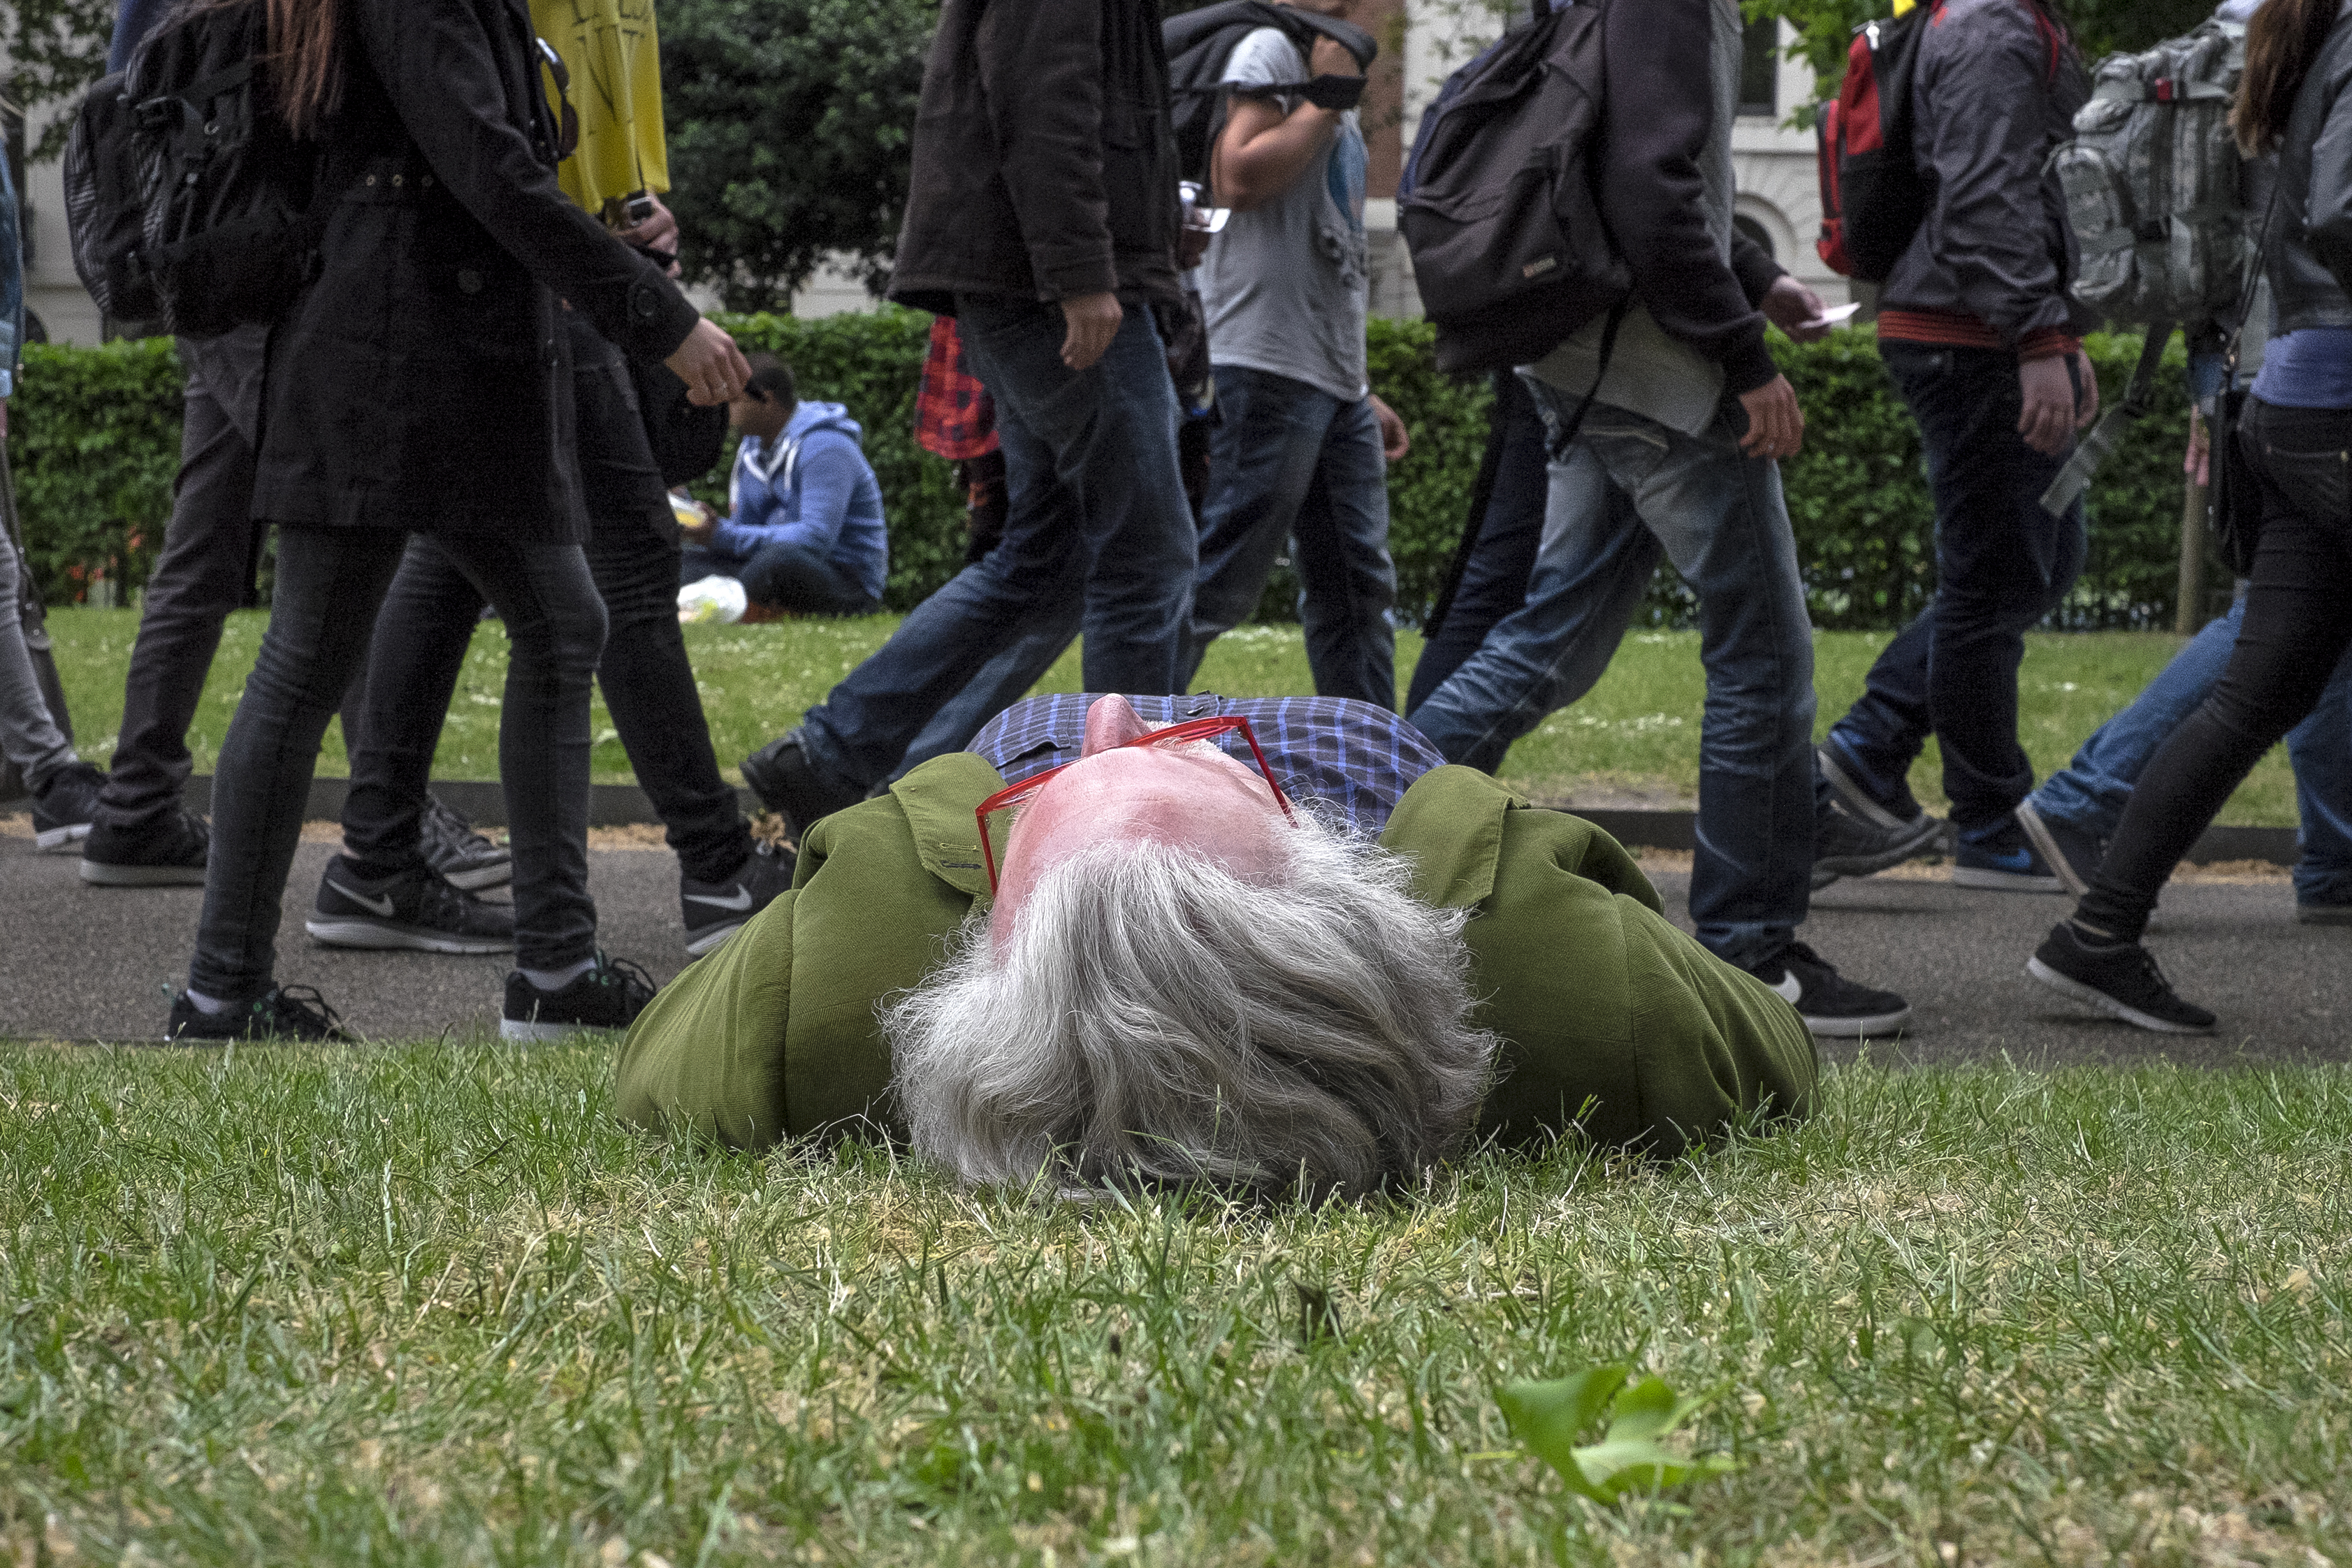 ASLEEP IN THE PARK. Bloomsbury Square Gardens, London 2015